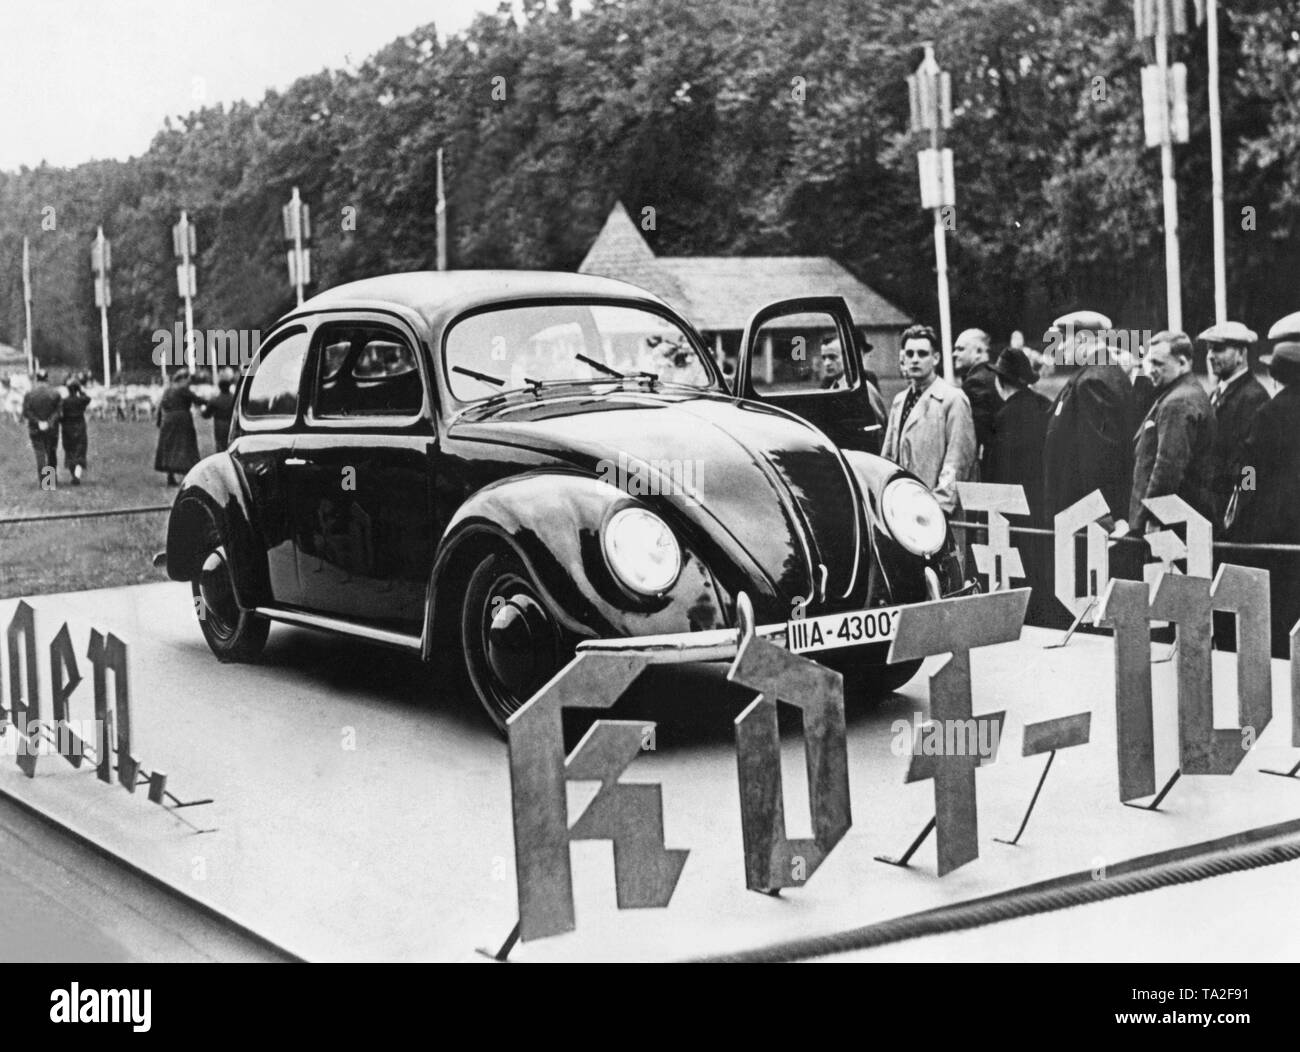 A prototype of the VW Beetle during a propaganda tour at the Treptow Volksfest 1938. - Stock Image